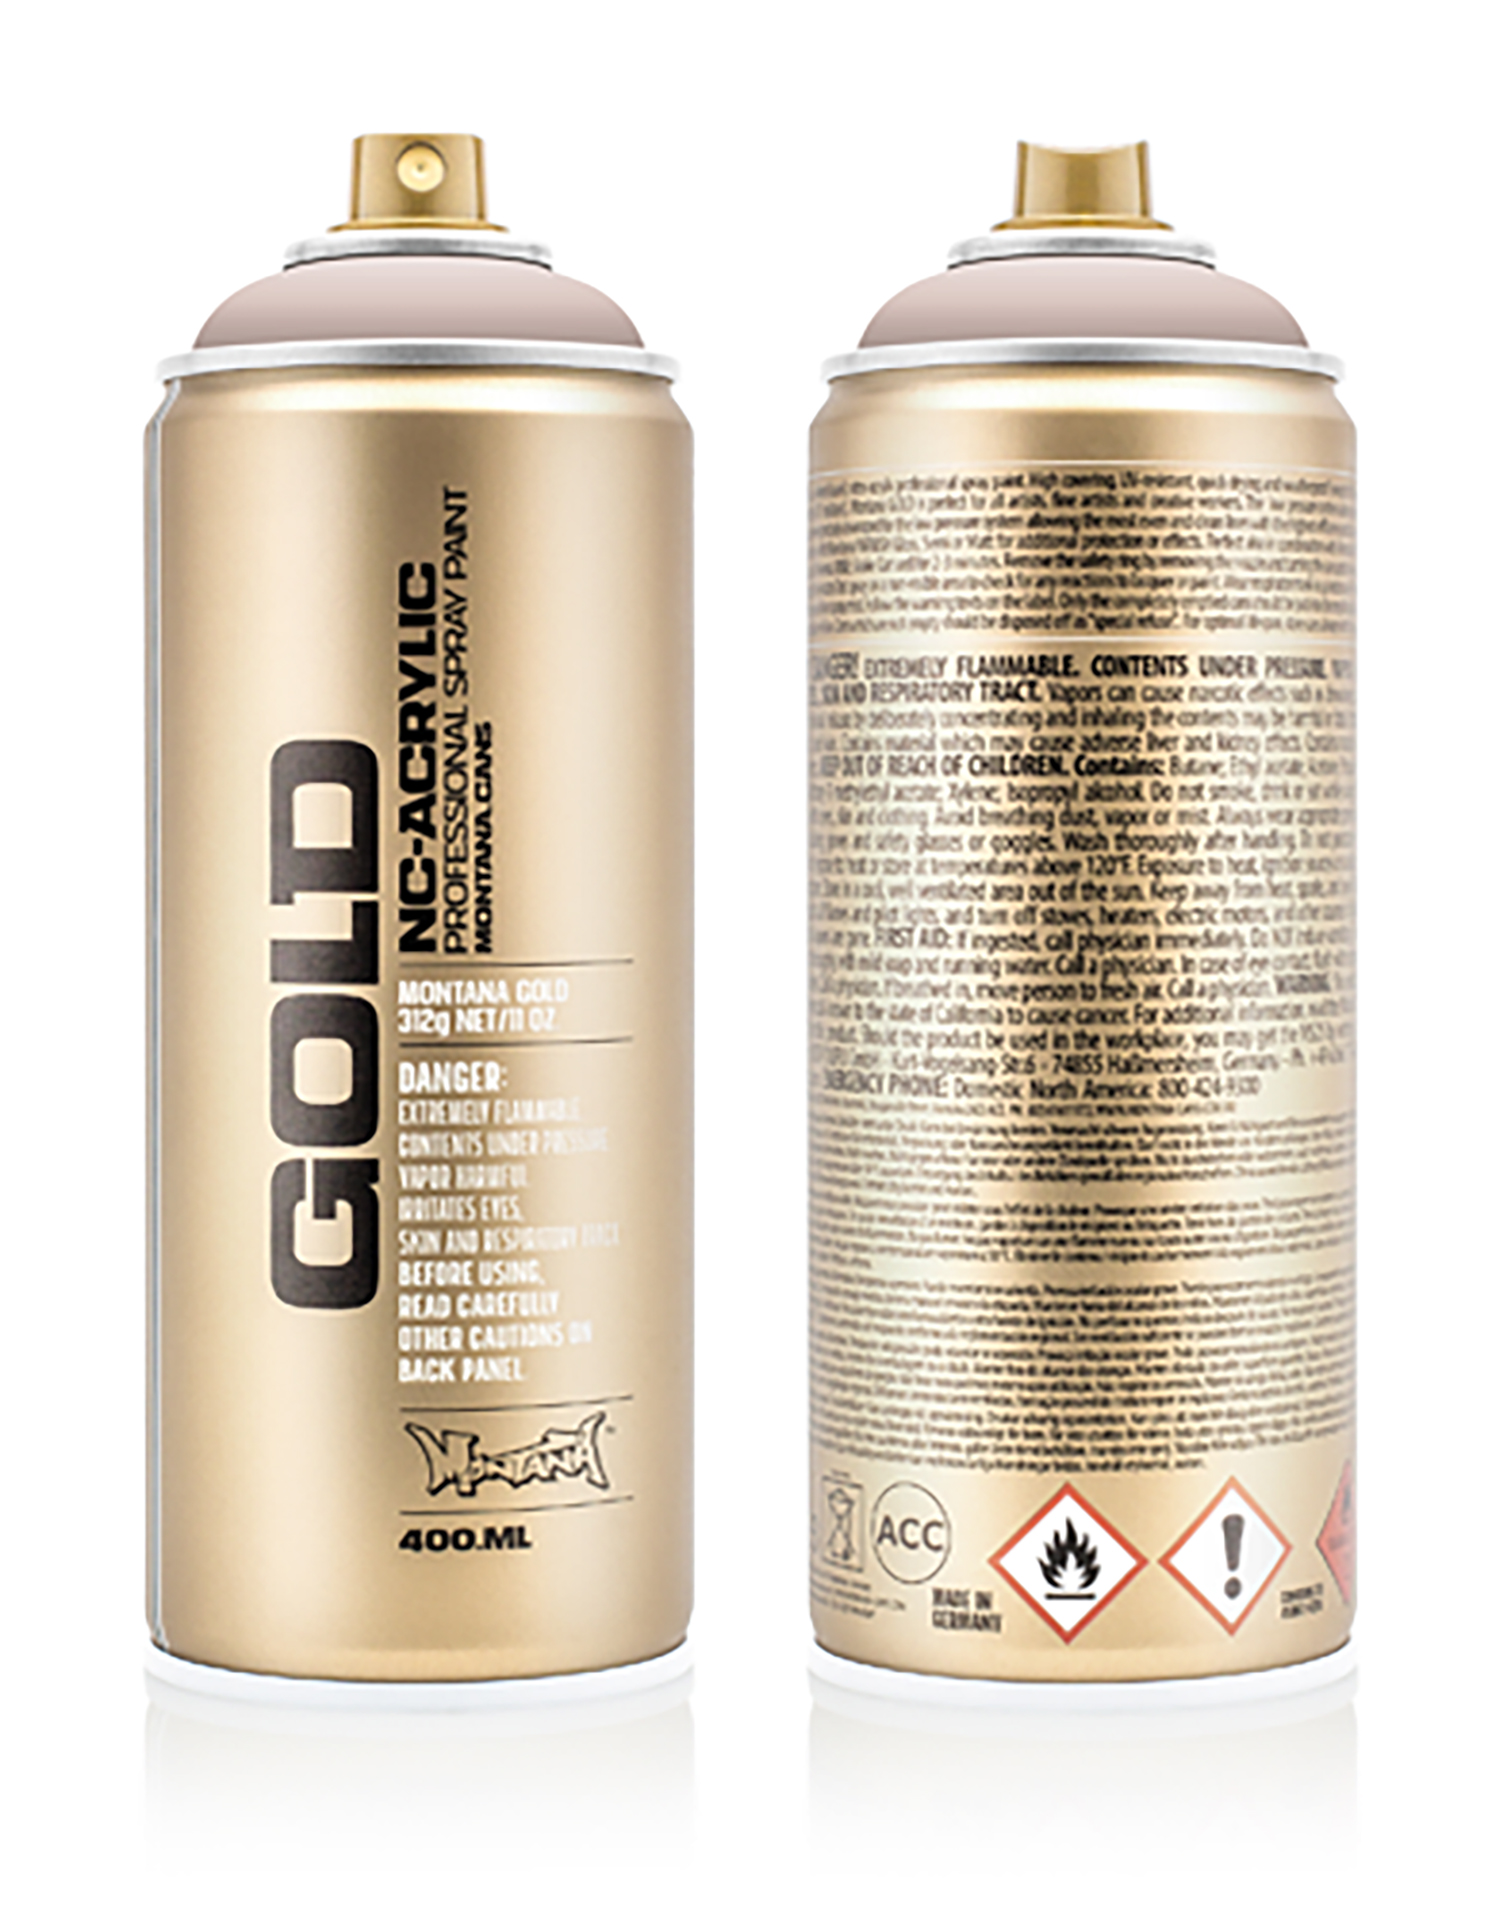 MONTANA-GOLD-SPRAY-400ML-G-8190